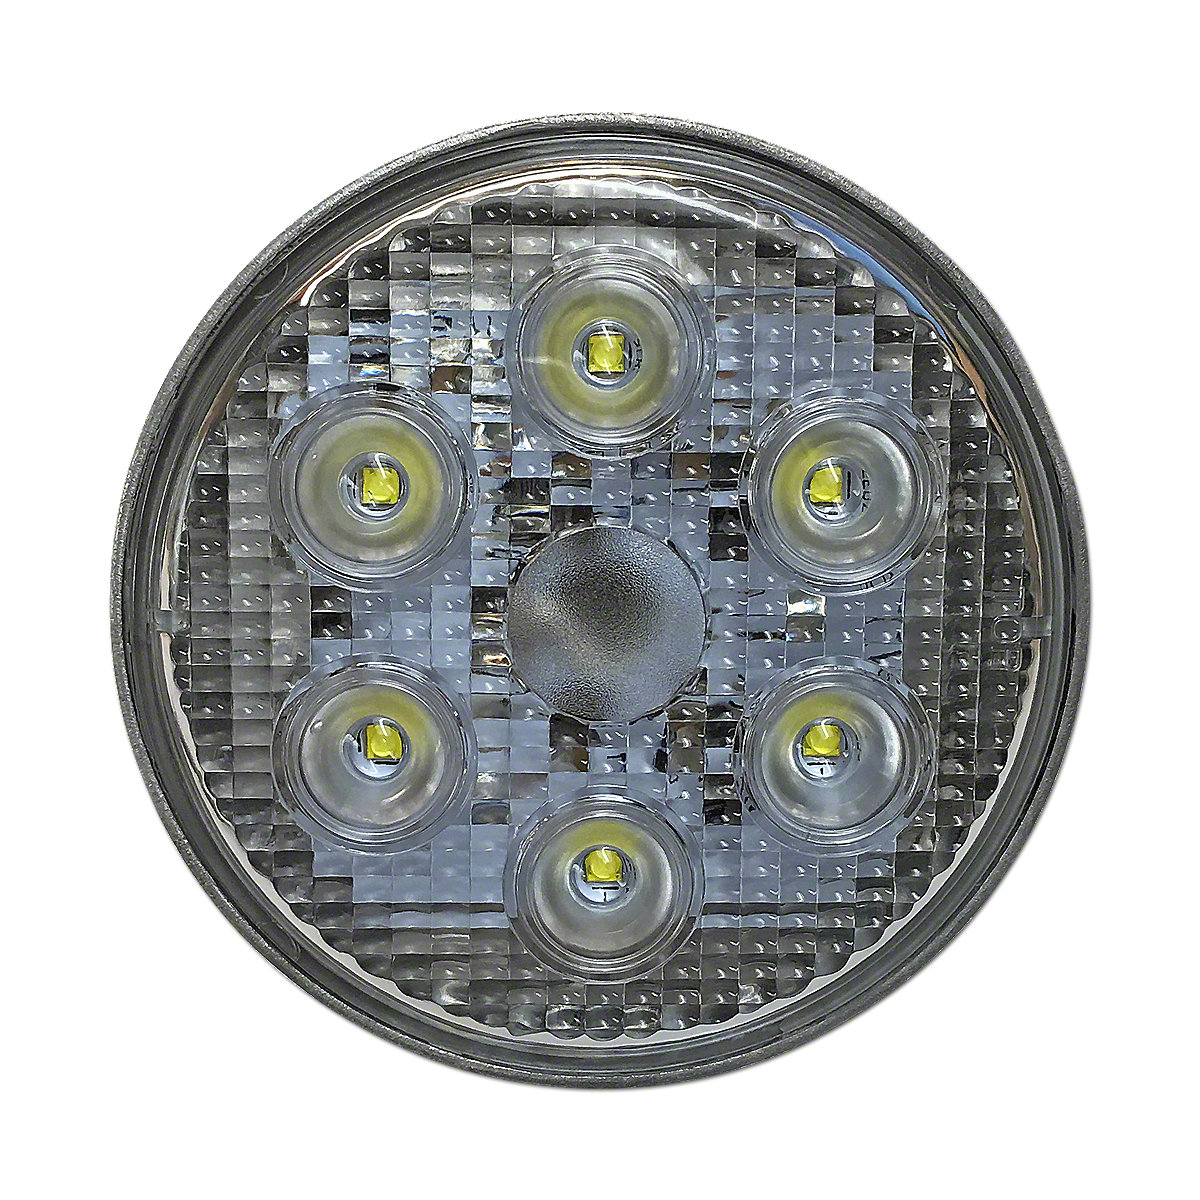 IHS3698LED Lamp w/ Flood Beam Pattern Works on Both 6 Volt and 12 Volt Systems